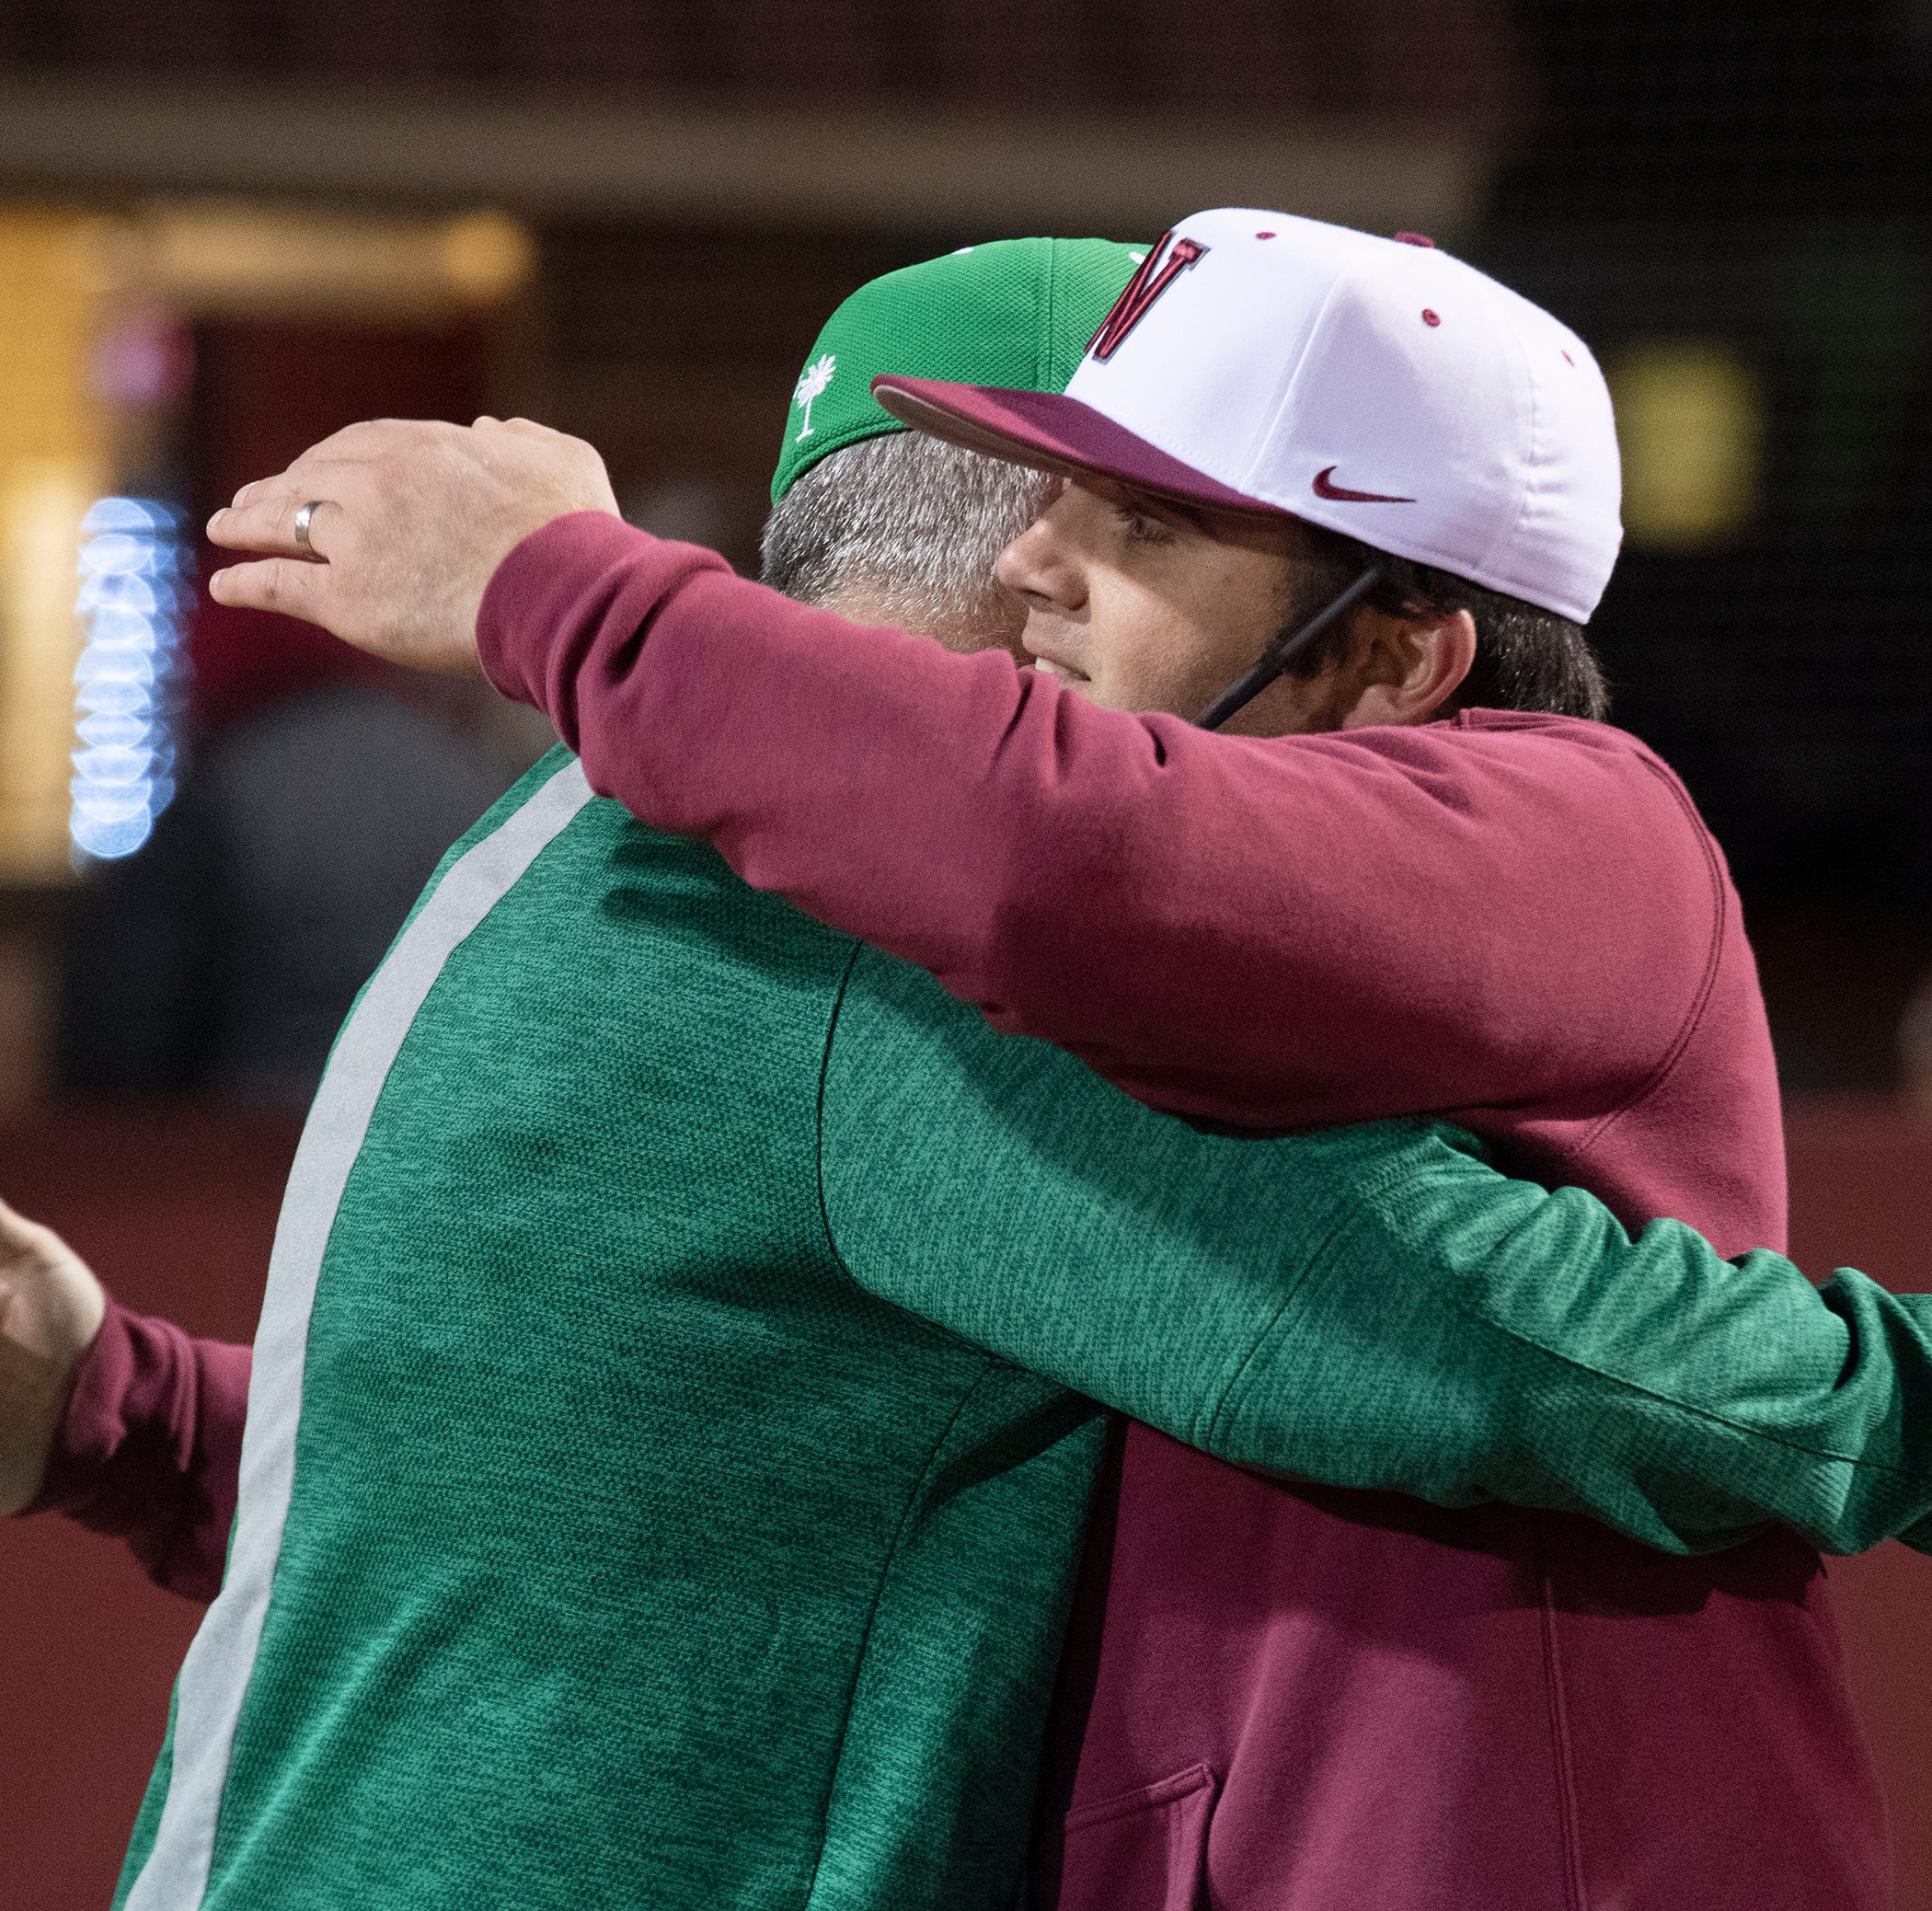 On home plate: Easley, Westside high schools meet in the ultimate father-son baseball game